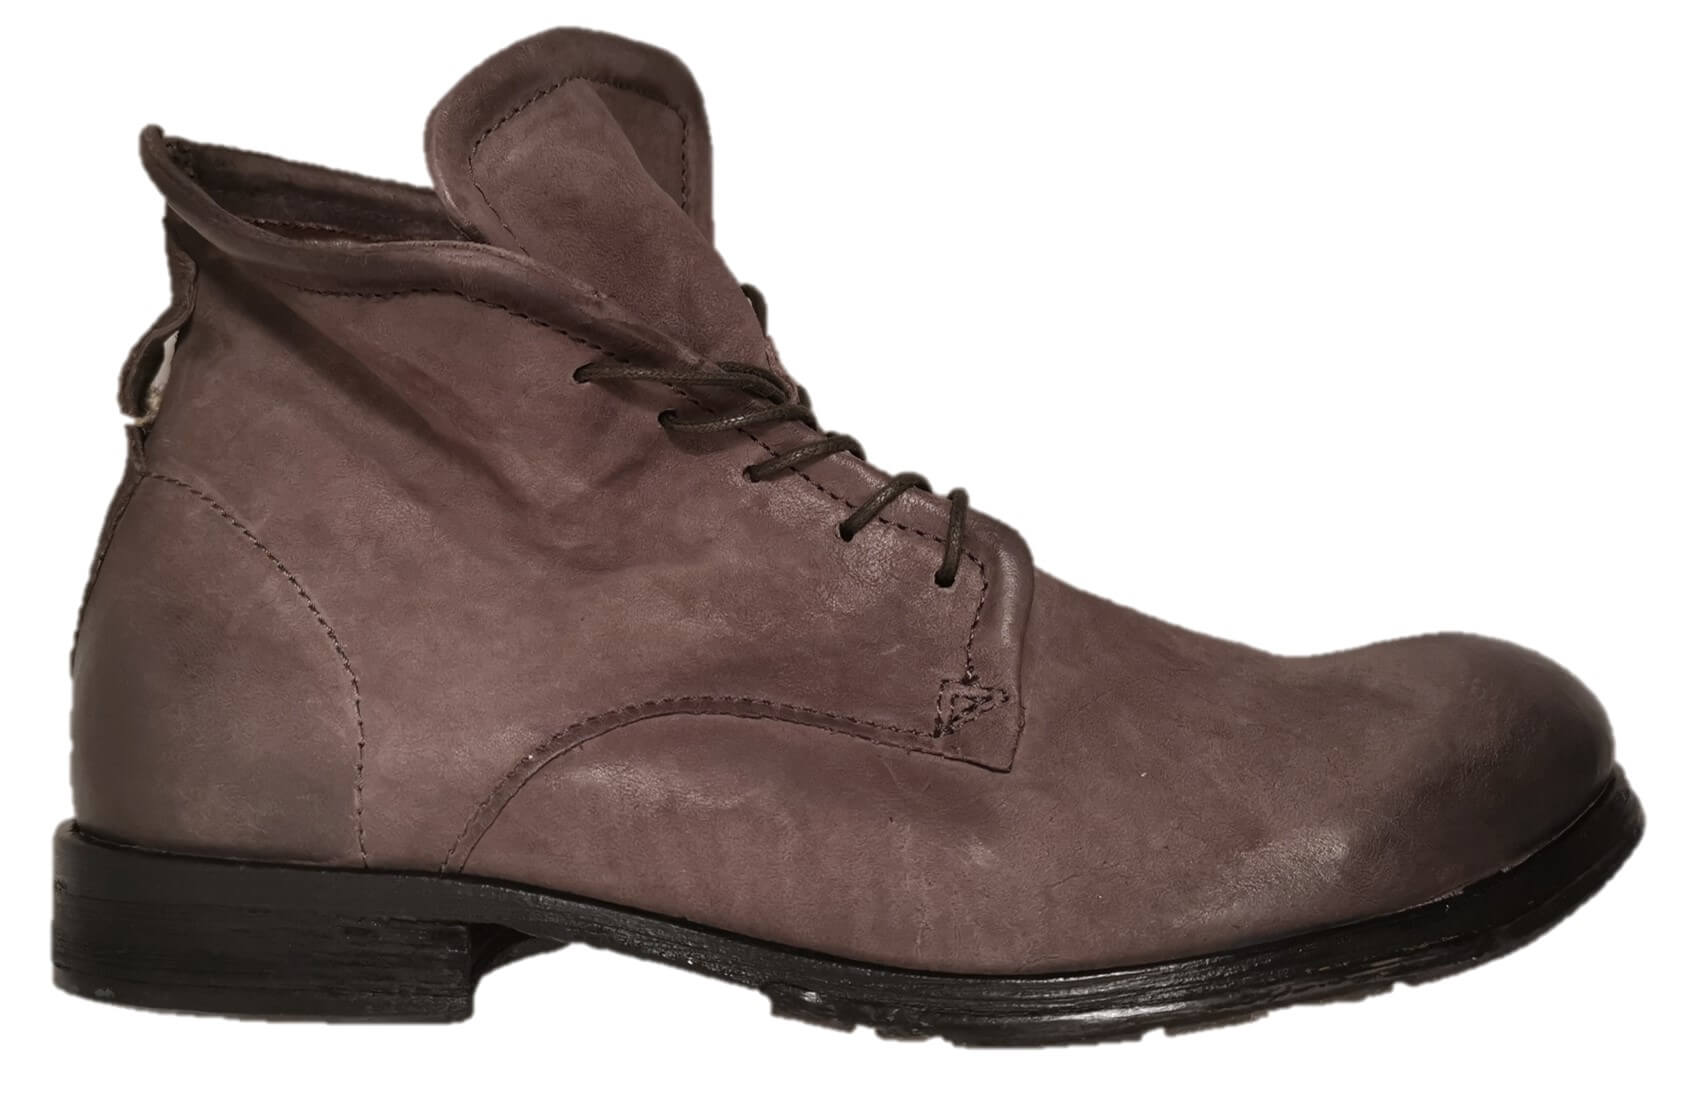 Grey boots for men